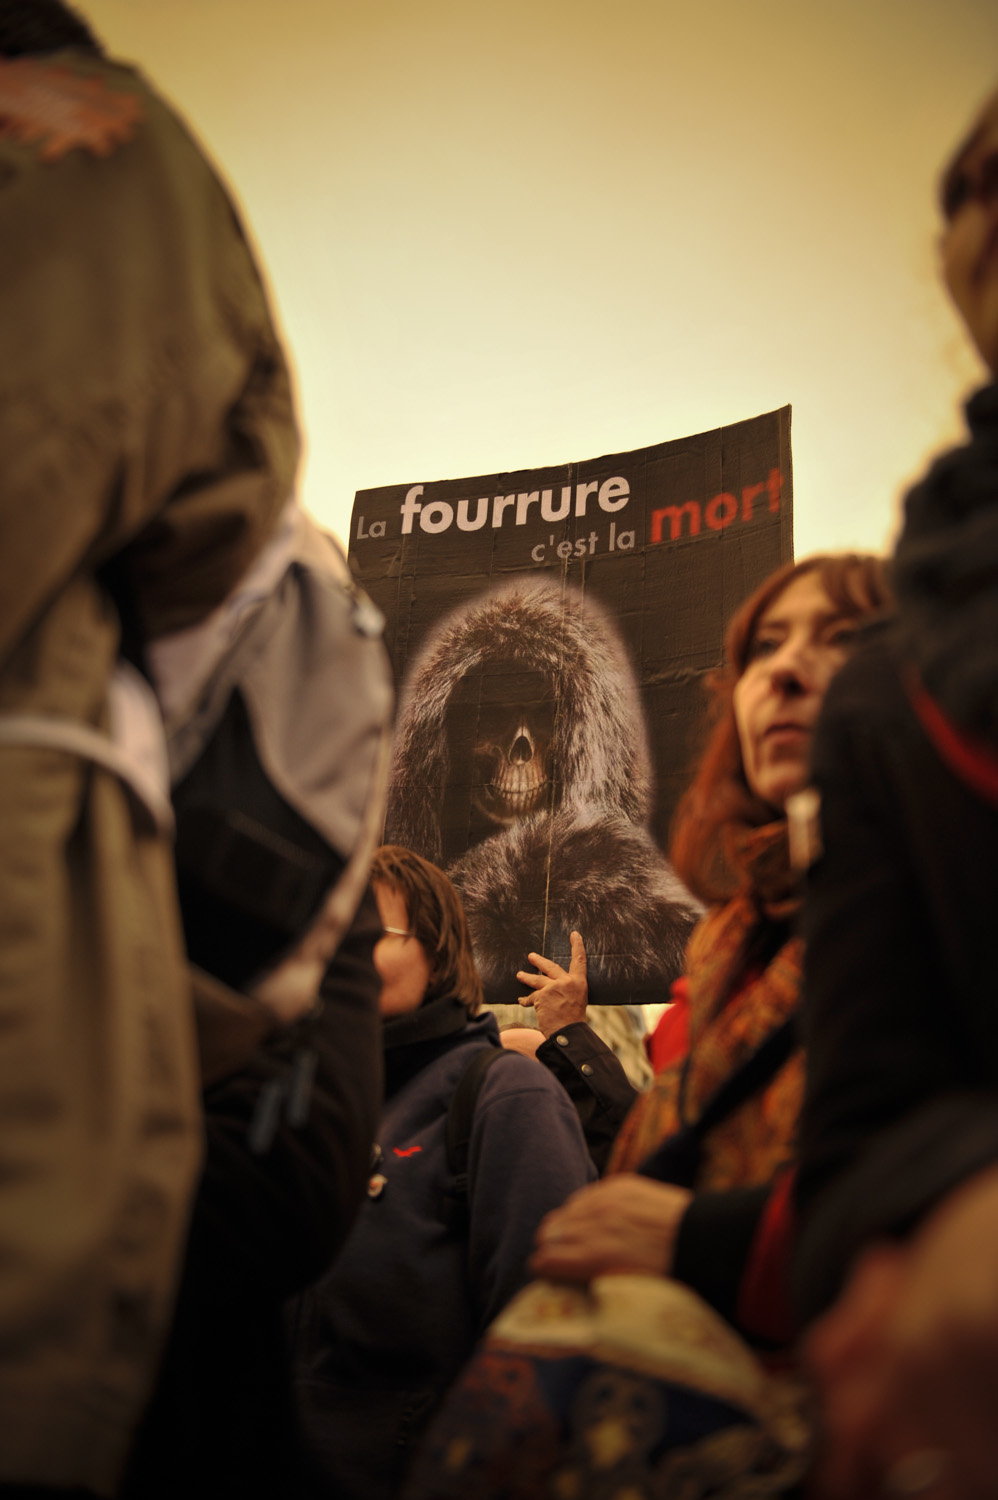 Demonstration against fur, November 2012, Paris - France. © Thierry TELAMON